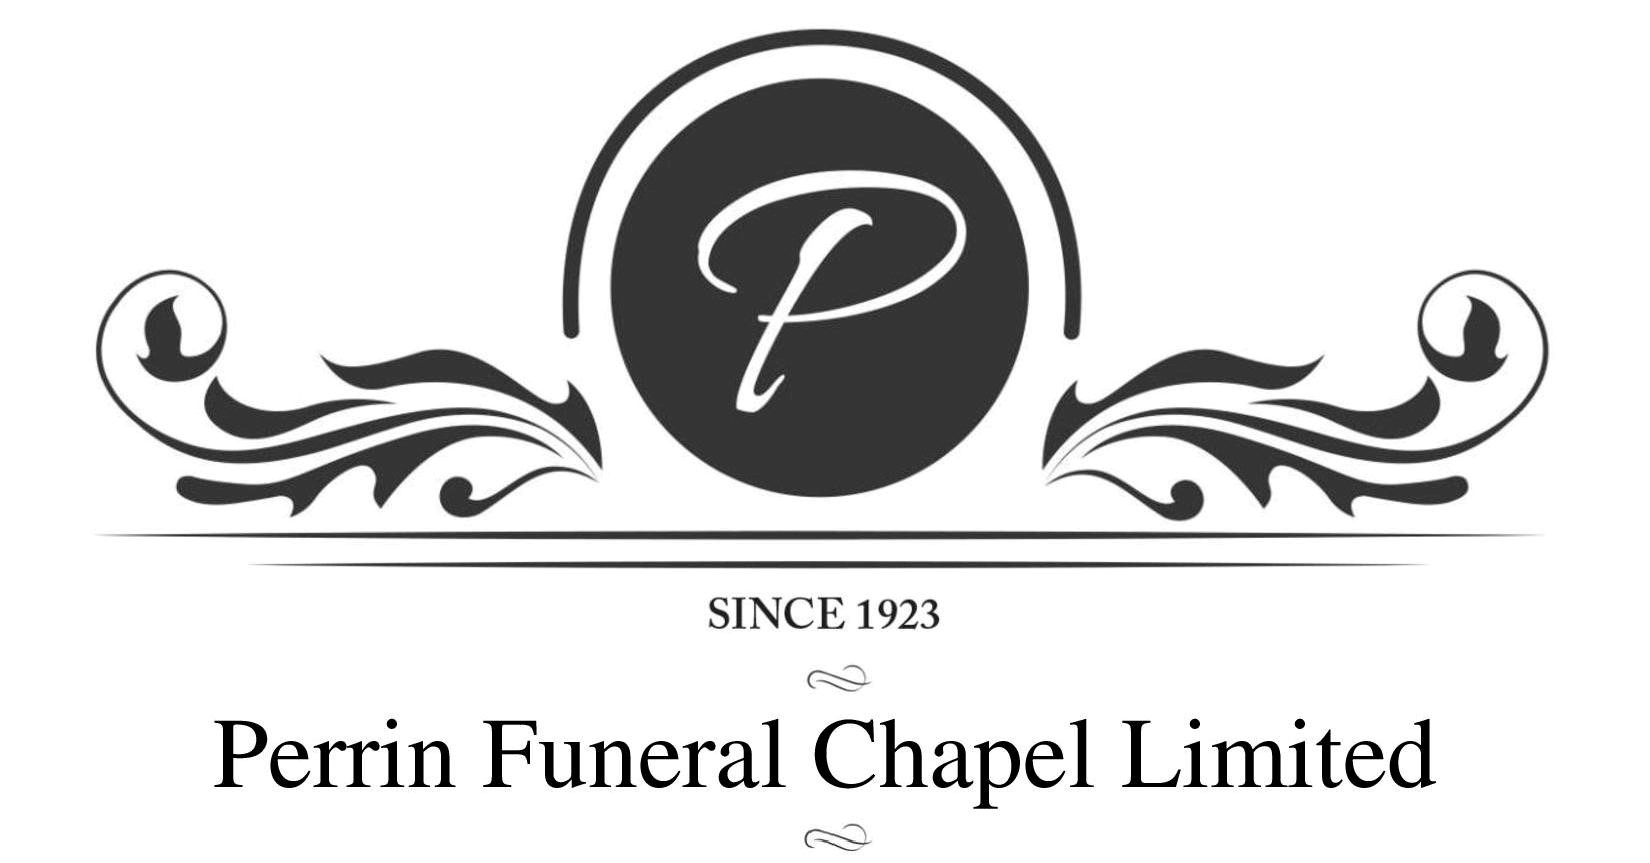 Funeral Director Class 1 or Funeral Director Intern